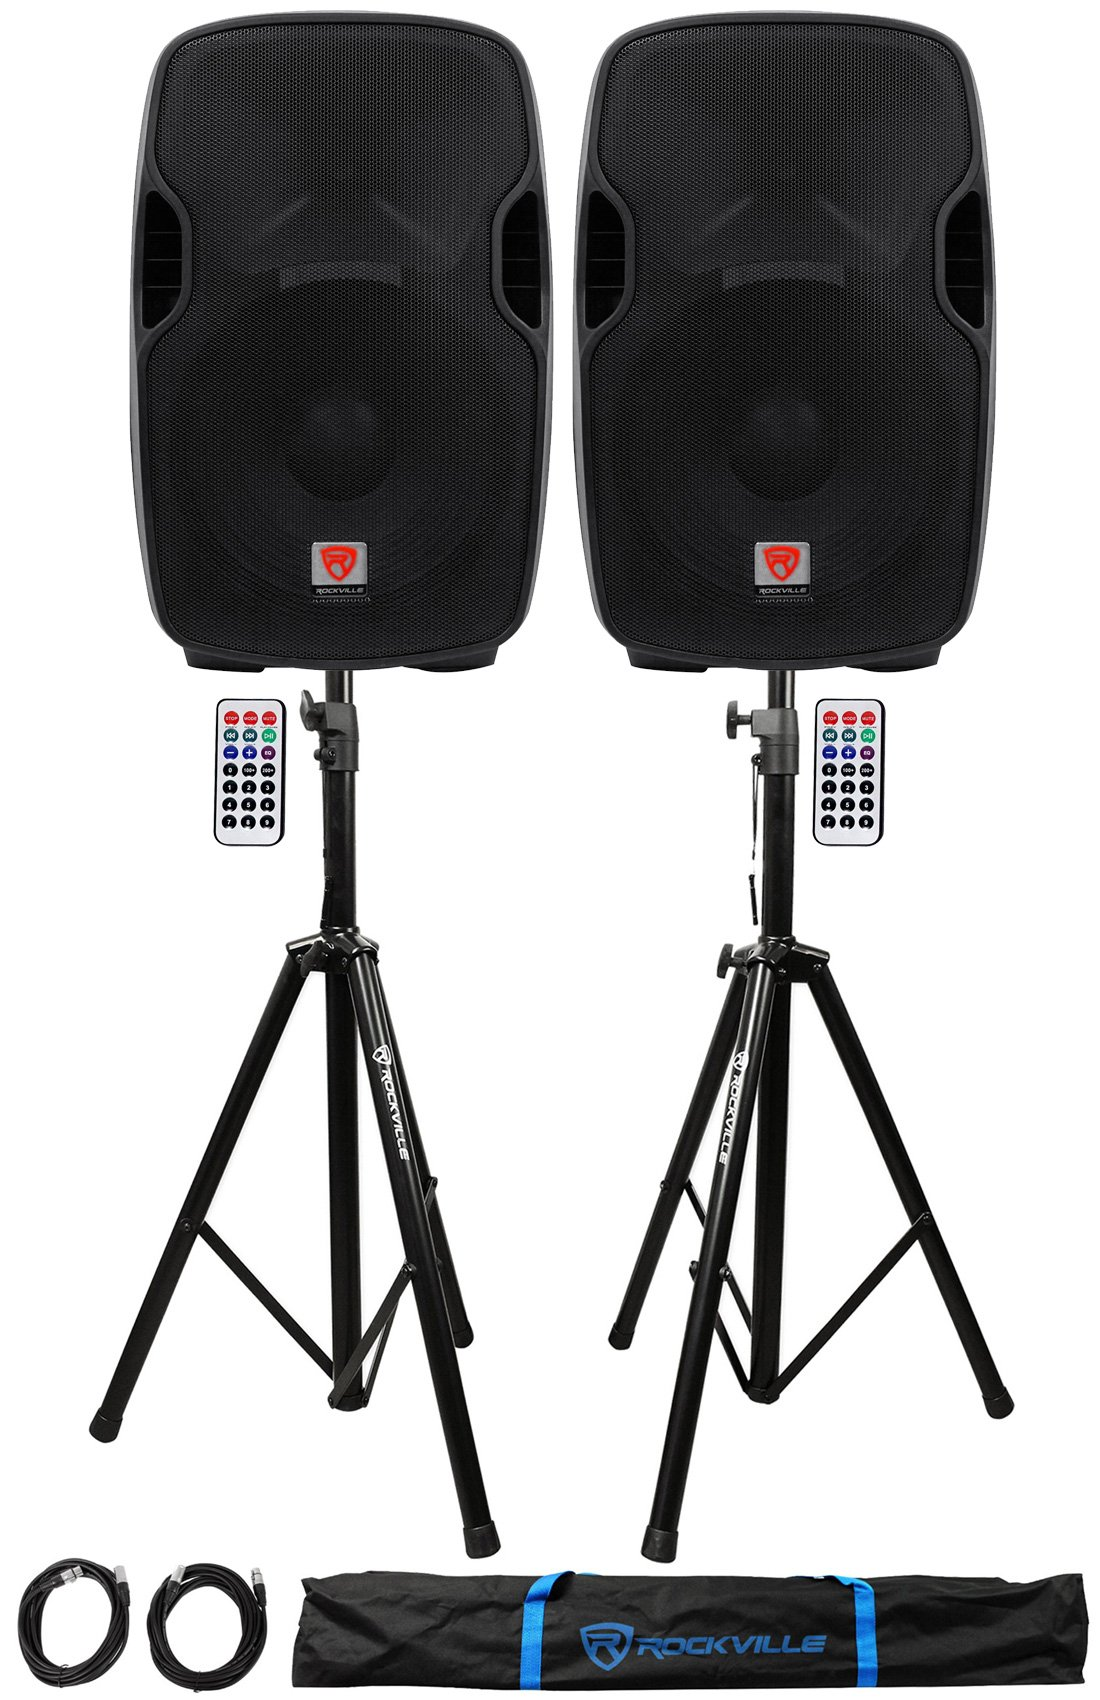 Package: (2) Rockville BPA15 15'' Active DJ/PA Speakers Totaling 1600 Watt + Pair of Rockville RVSS2-XLR Heavy Duty Adjustable Pro PA Speaker Stands + (2) 20' XLR Cables + Carrying Case by Rockville